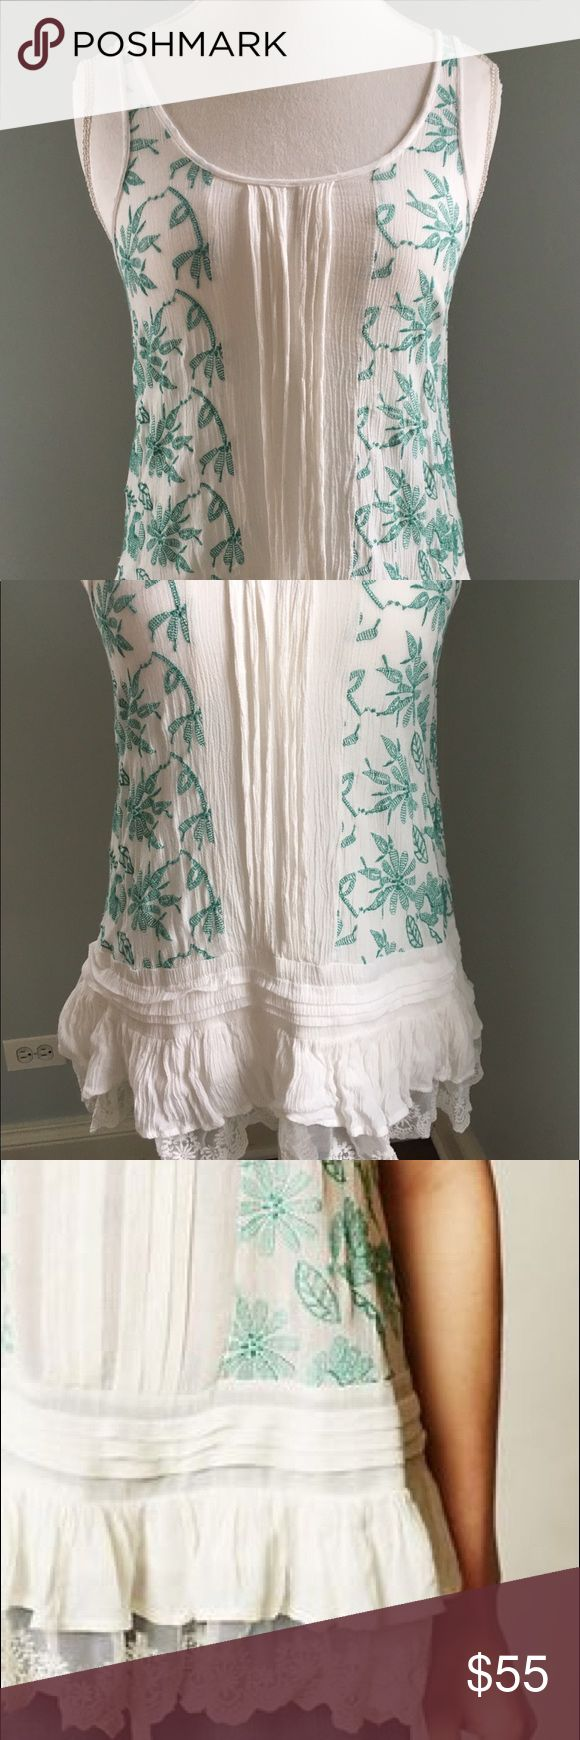 Lilka Embroidered Lace Tank Top Lilka Sinaloa lace green tank top from Anthropologie! White linen/gauze tank top with green embroidered flowers and a lace hem! Anthropologie Tops Tank Tops